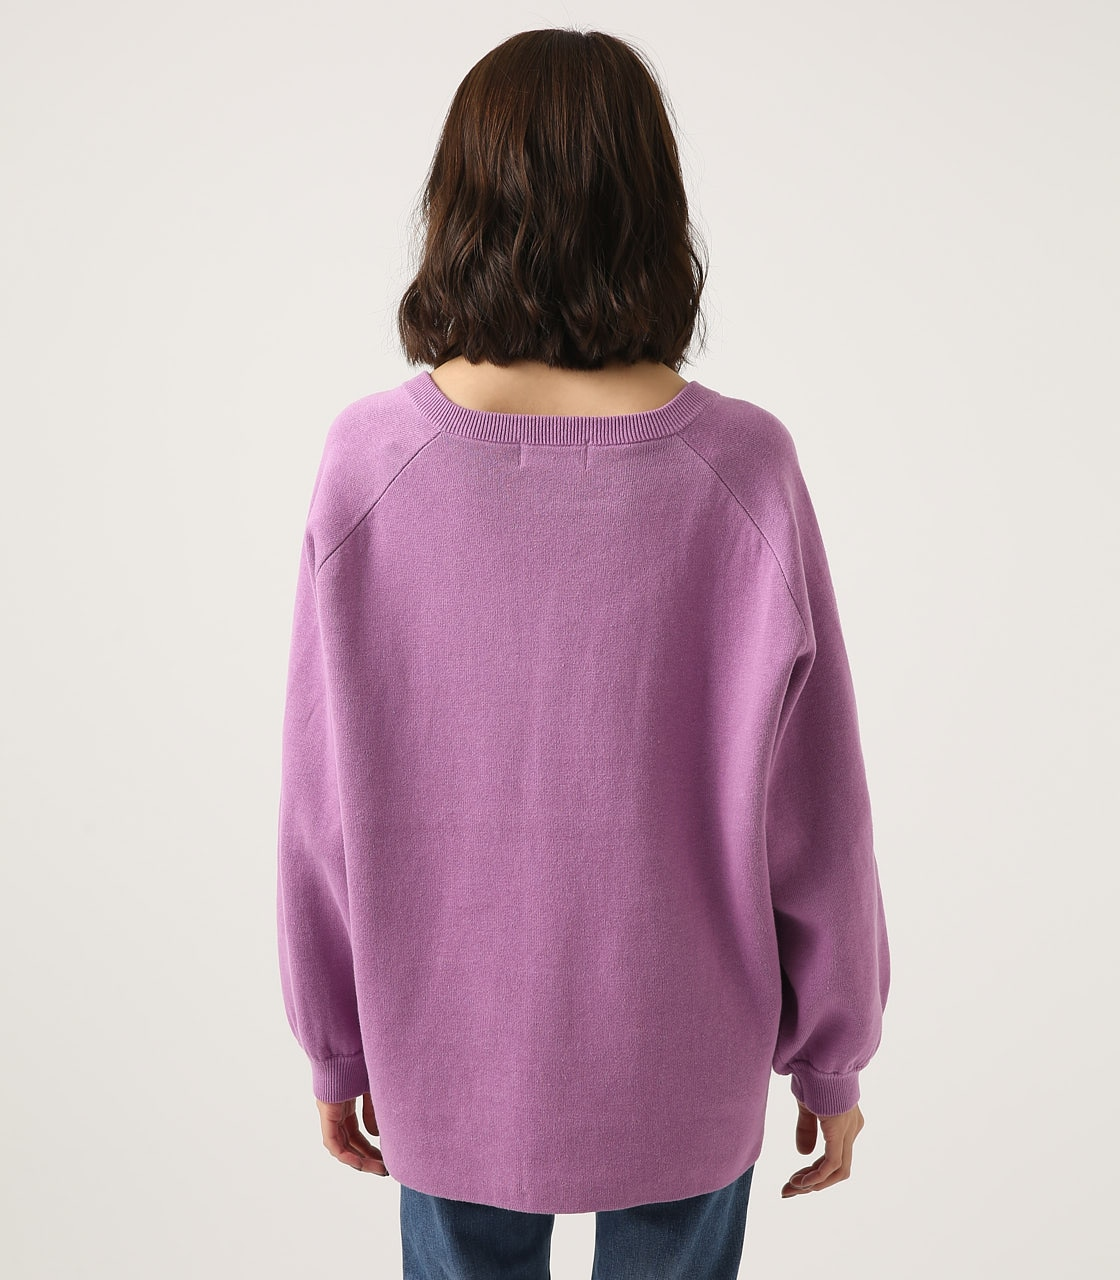 【AZUL BY MOUSSY】SWEATTER Vネック LOOSE TOPS 詳細画像 L/PUR 7